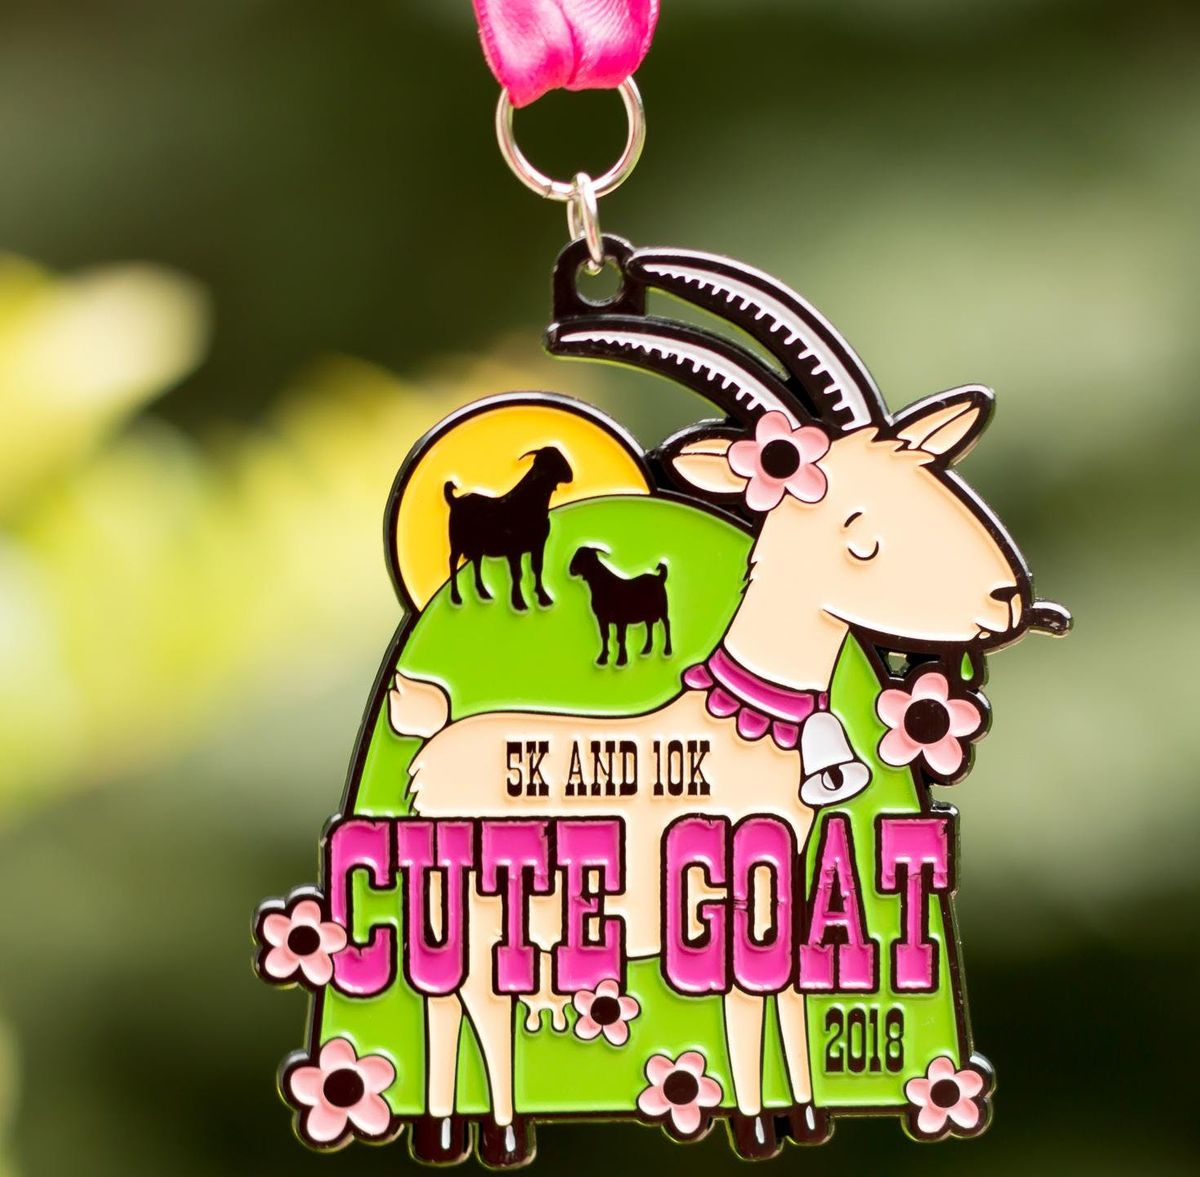 Now Only 10 Cute Goat 5K & 10K - Chandler